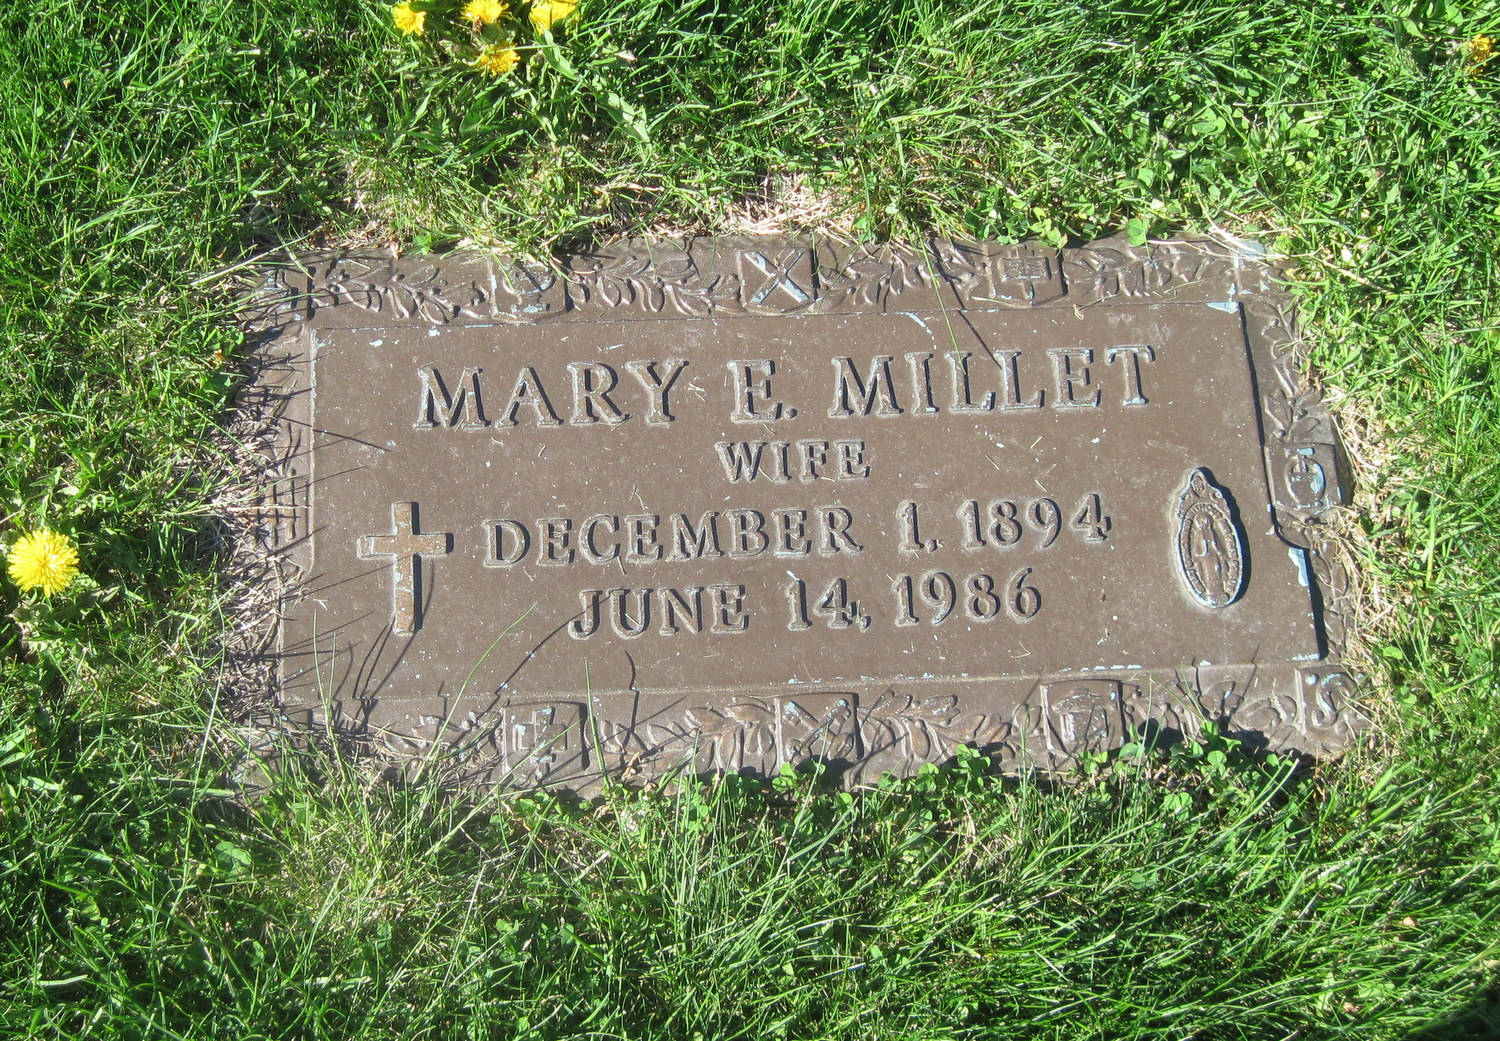 Mary E. Millet